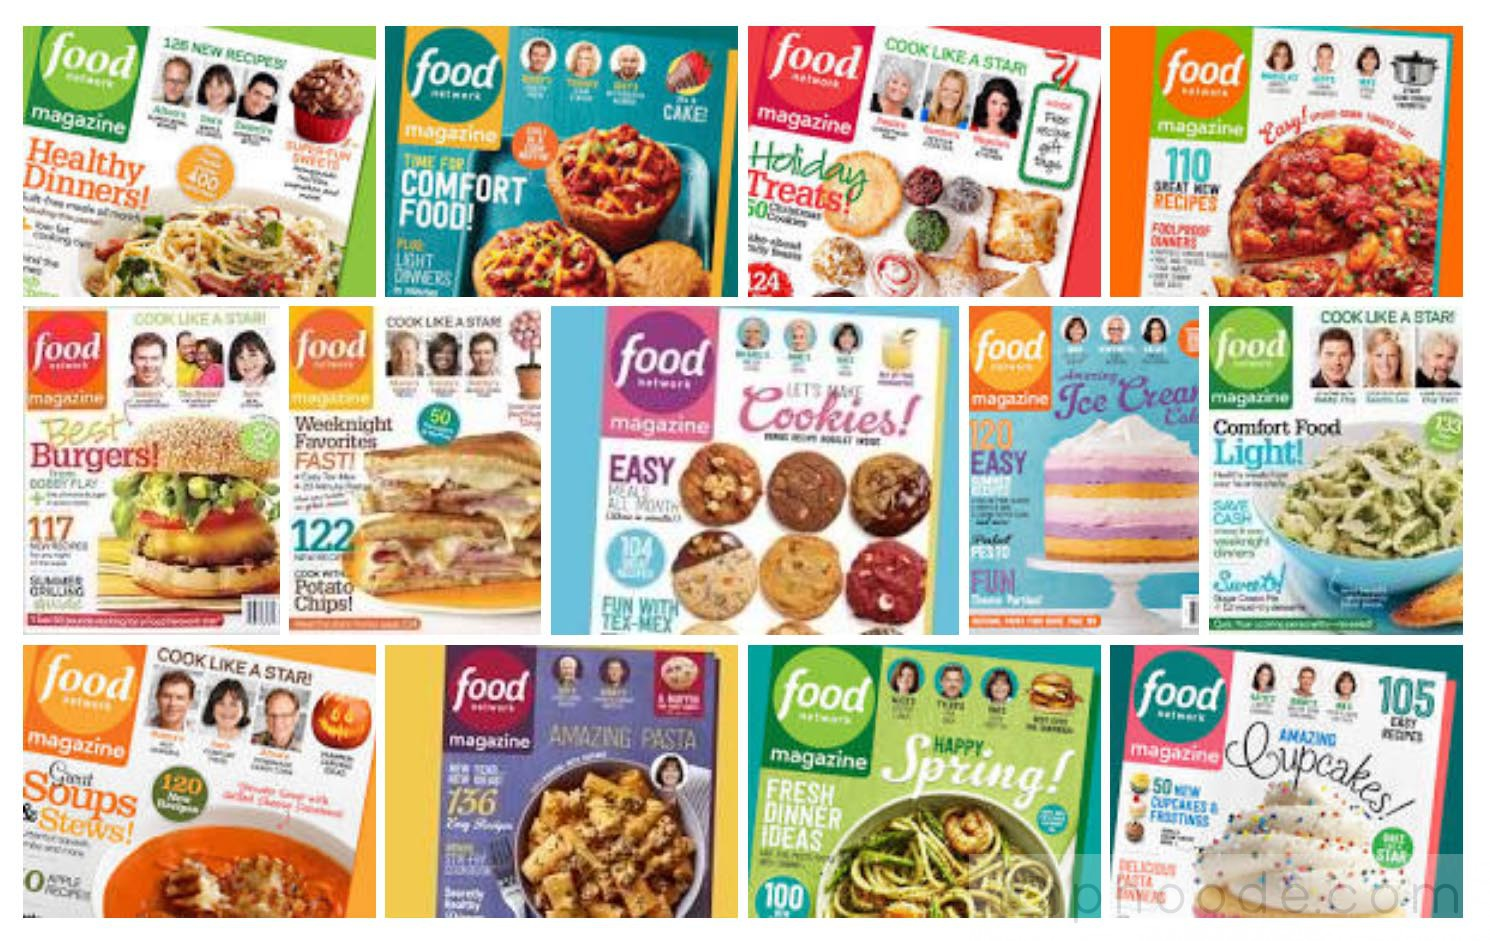 food magazine photoeditor cover; food photography jobs; food photography career; art food magazine cover; international platform for food photographers; international online association of food photographers; food photography news; food photography awards; trends in food photography; contest food photography; website for people who want to become serious food photographers; we are reviewing food photography portfolios; curating the best food photography; food photography educators/mentors; creative director for food photography, culinary creative director, food network magazine cover